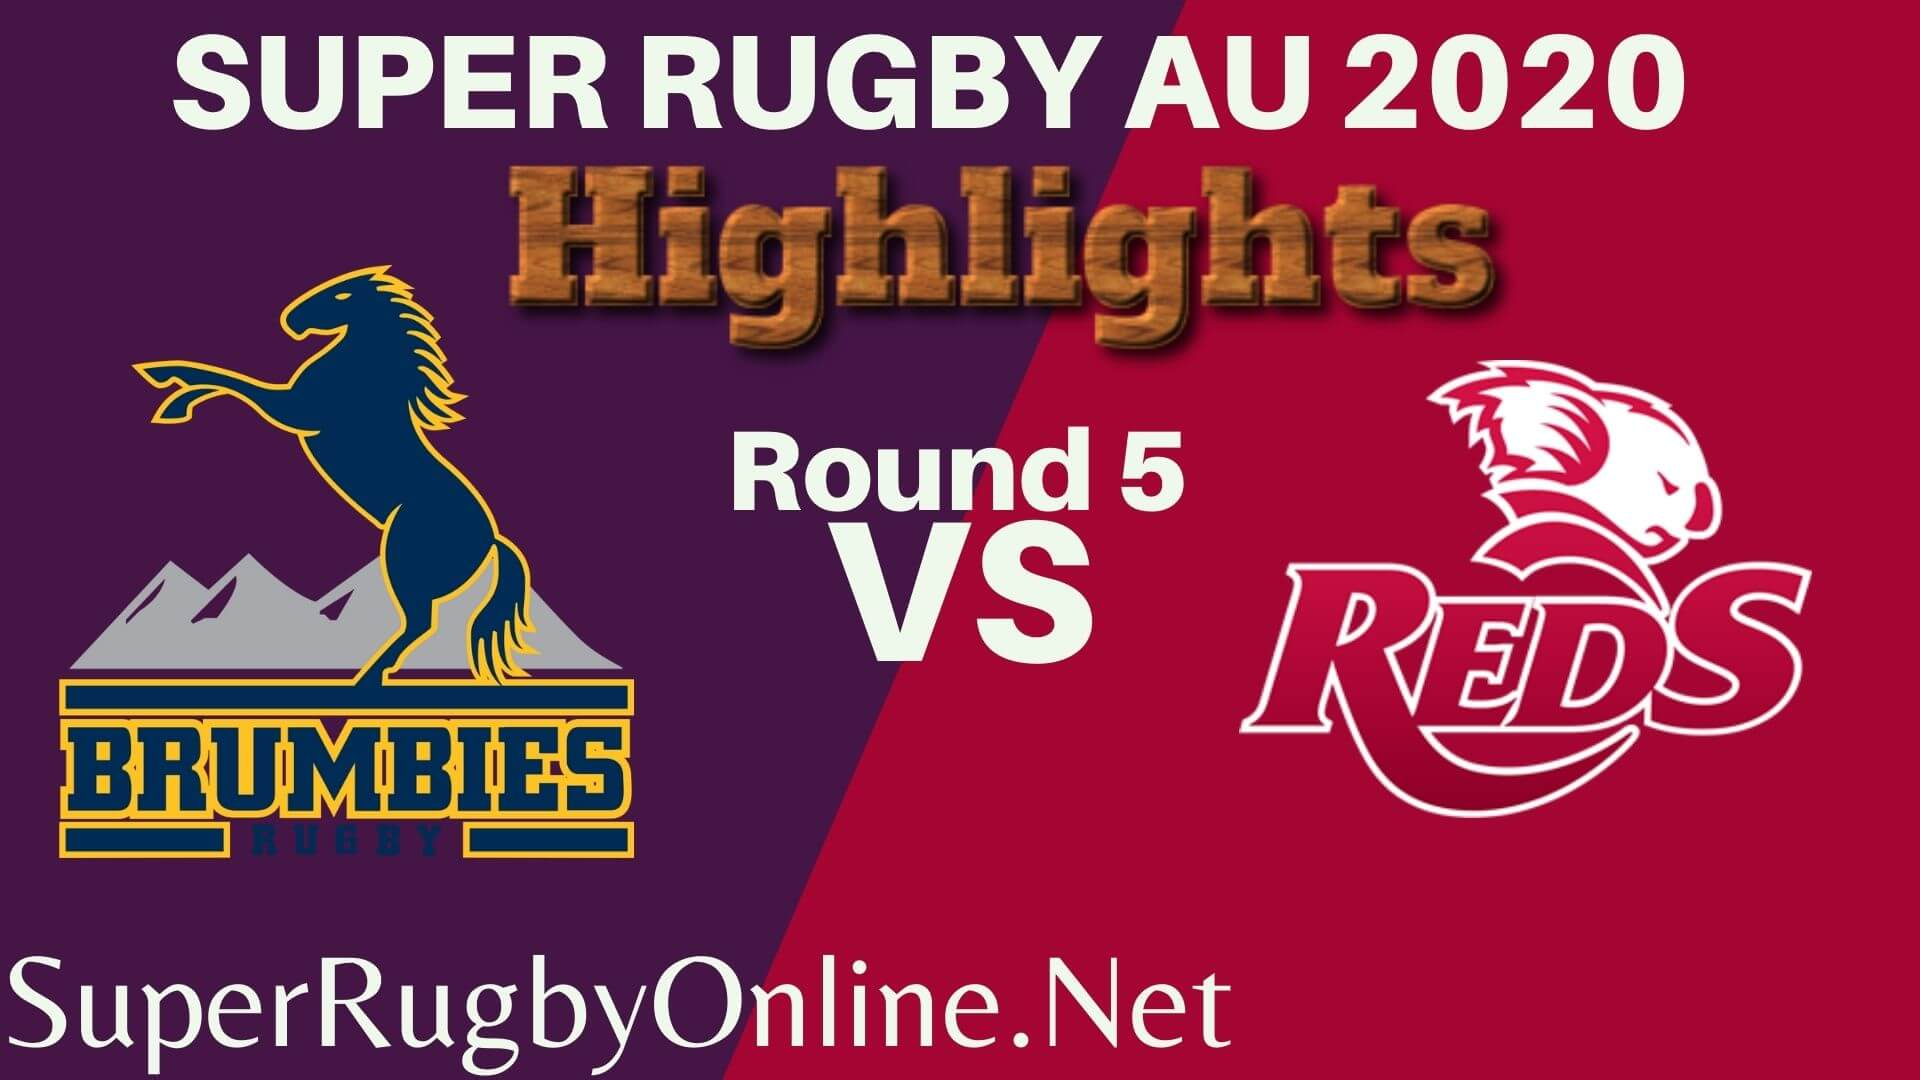 Brumbies Vs Reds Rd 5 Highlights 2020 Super Rugby Au